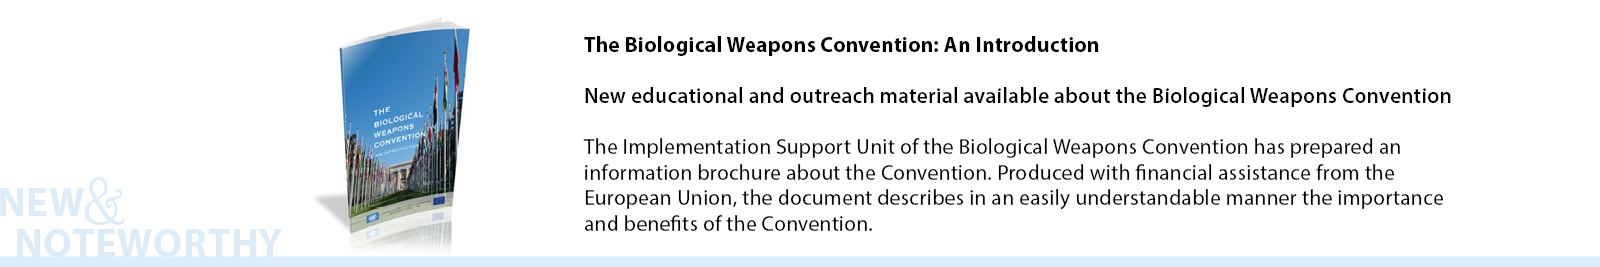 The Implementation Support Unit of the Biological Weapons Convention (BWC) which is based within the United Nations Office for Disarmament Affairs has prepared an information brochure about the Convention. Produced with financial assistance from the European Union, the document describes in an easily understandable manner the importance and benefits of the Convention.